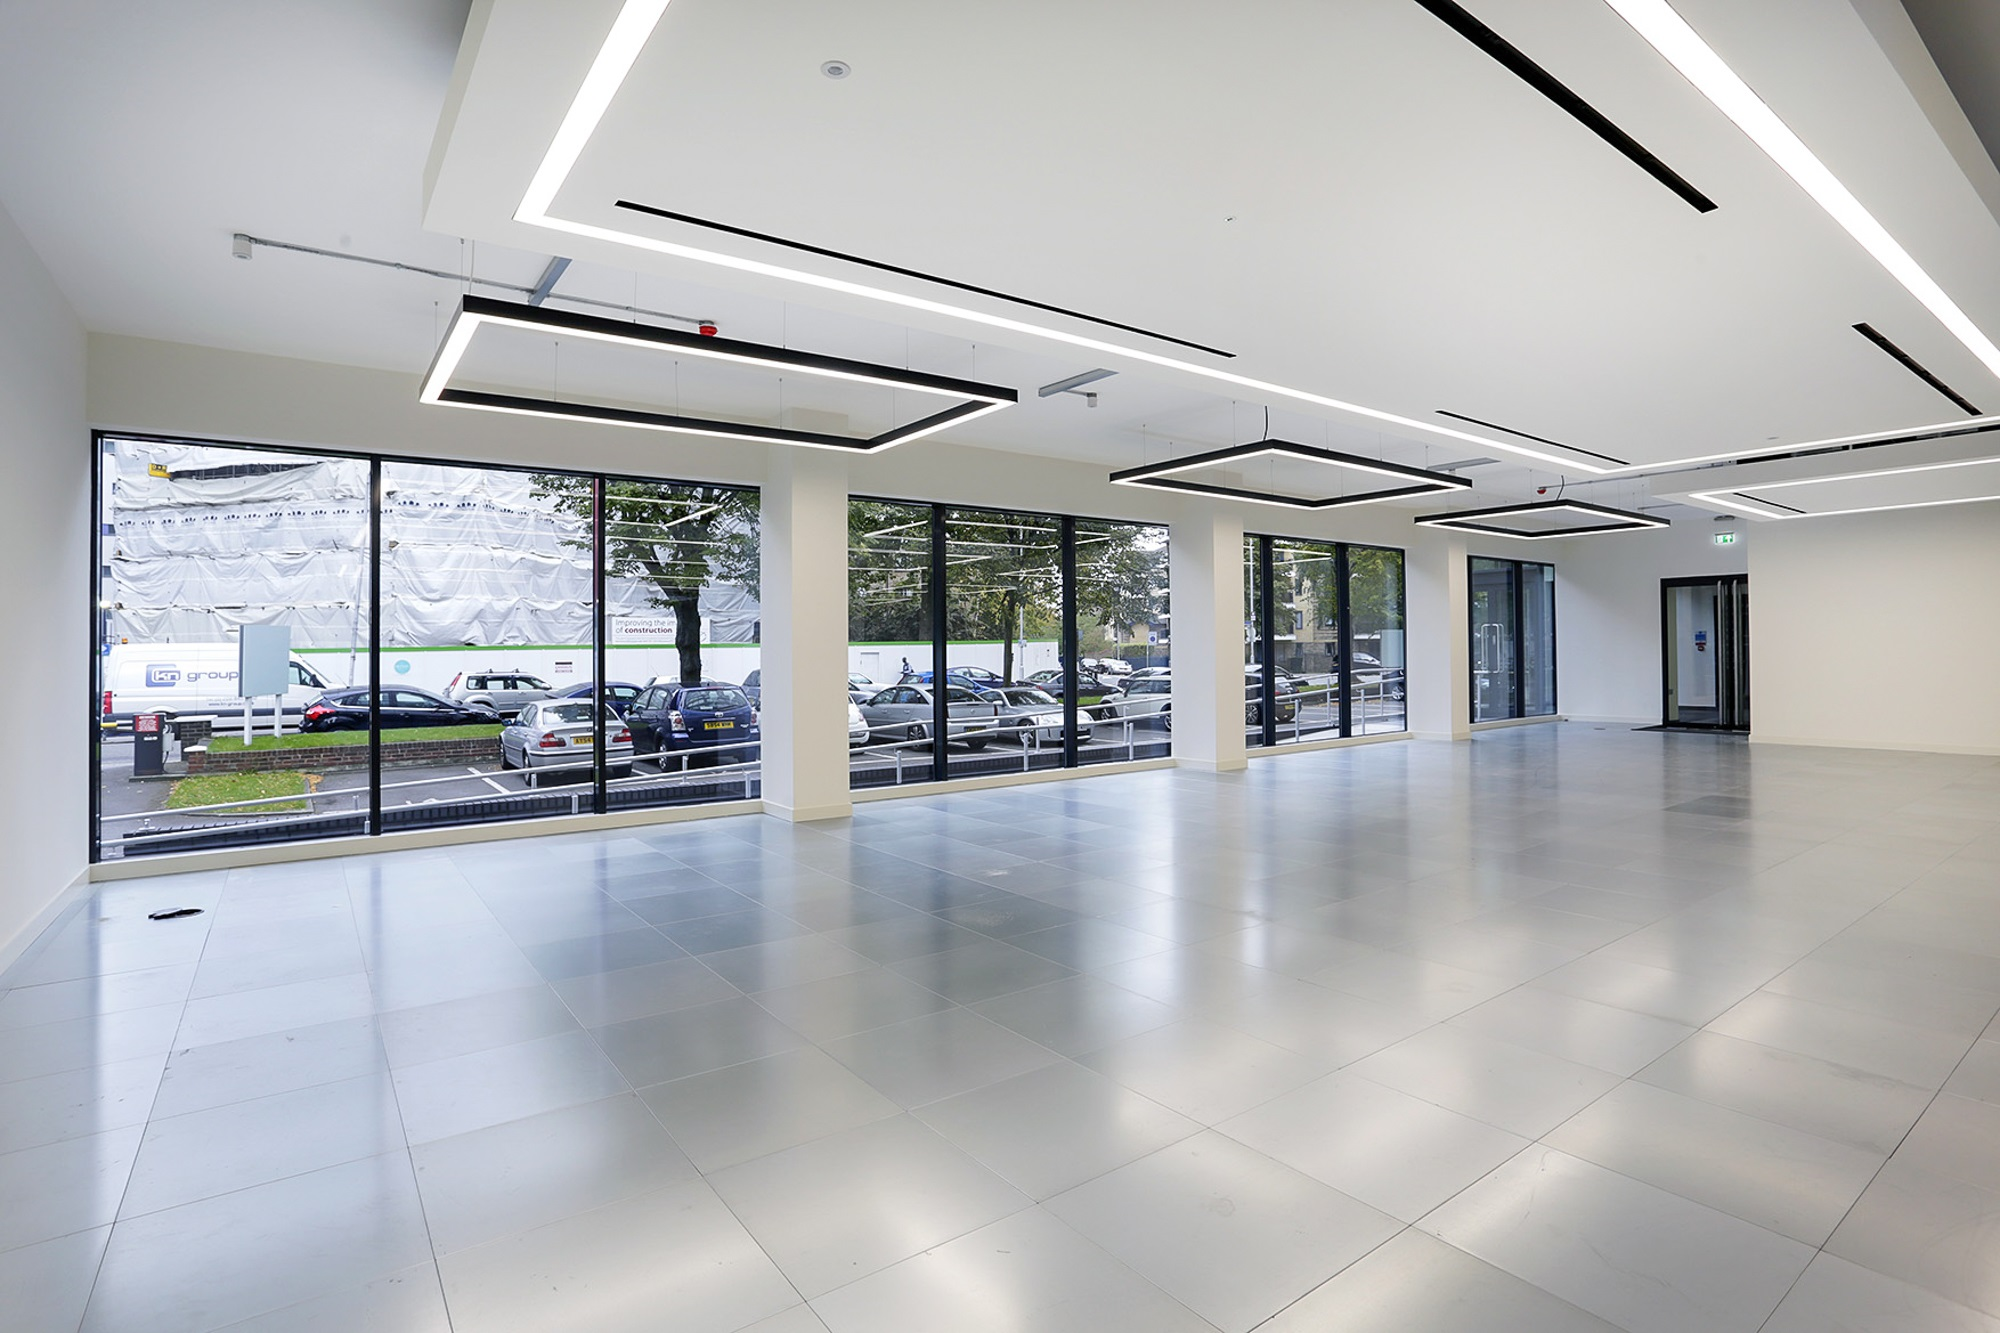 refurbished empty office space with white ceiling